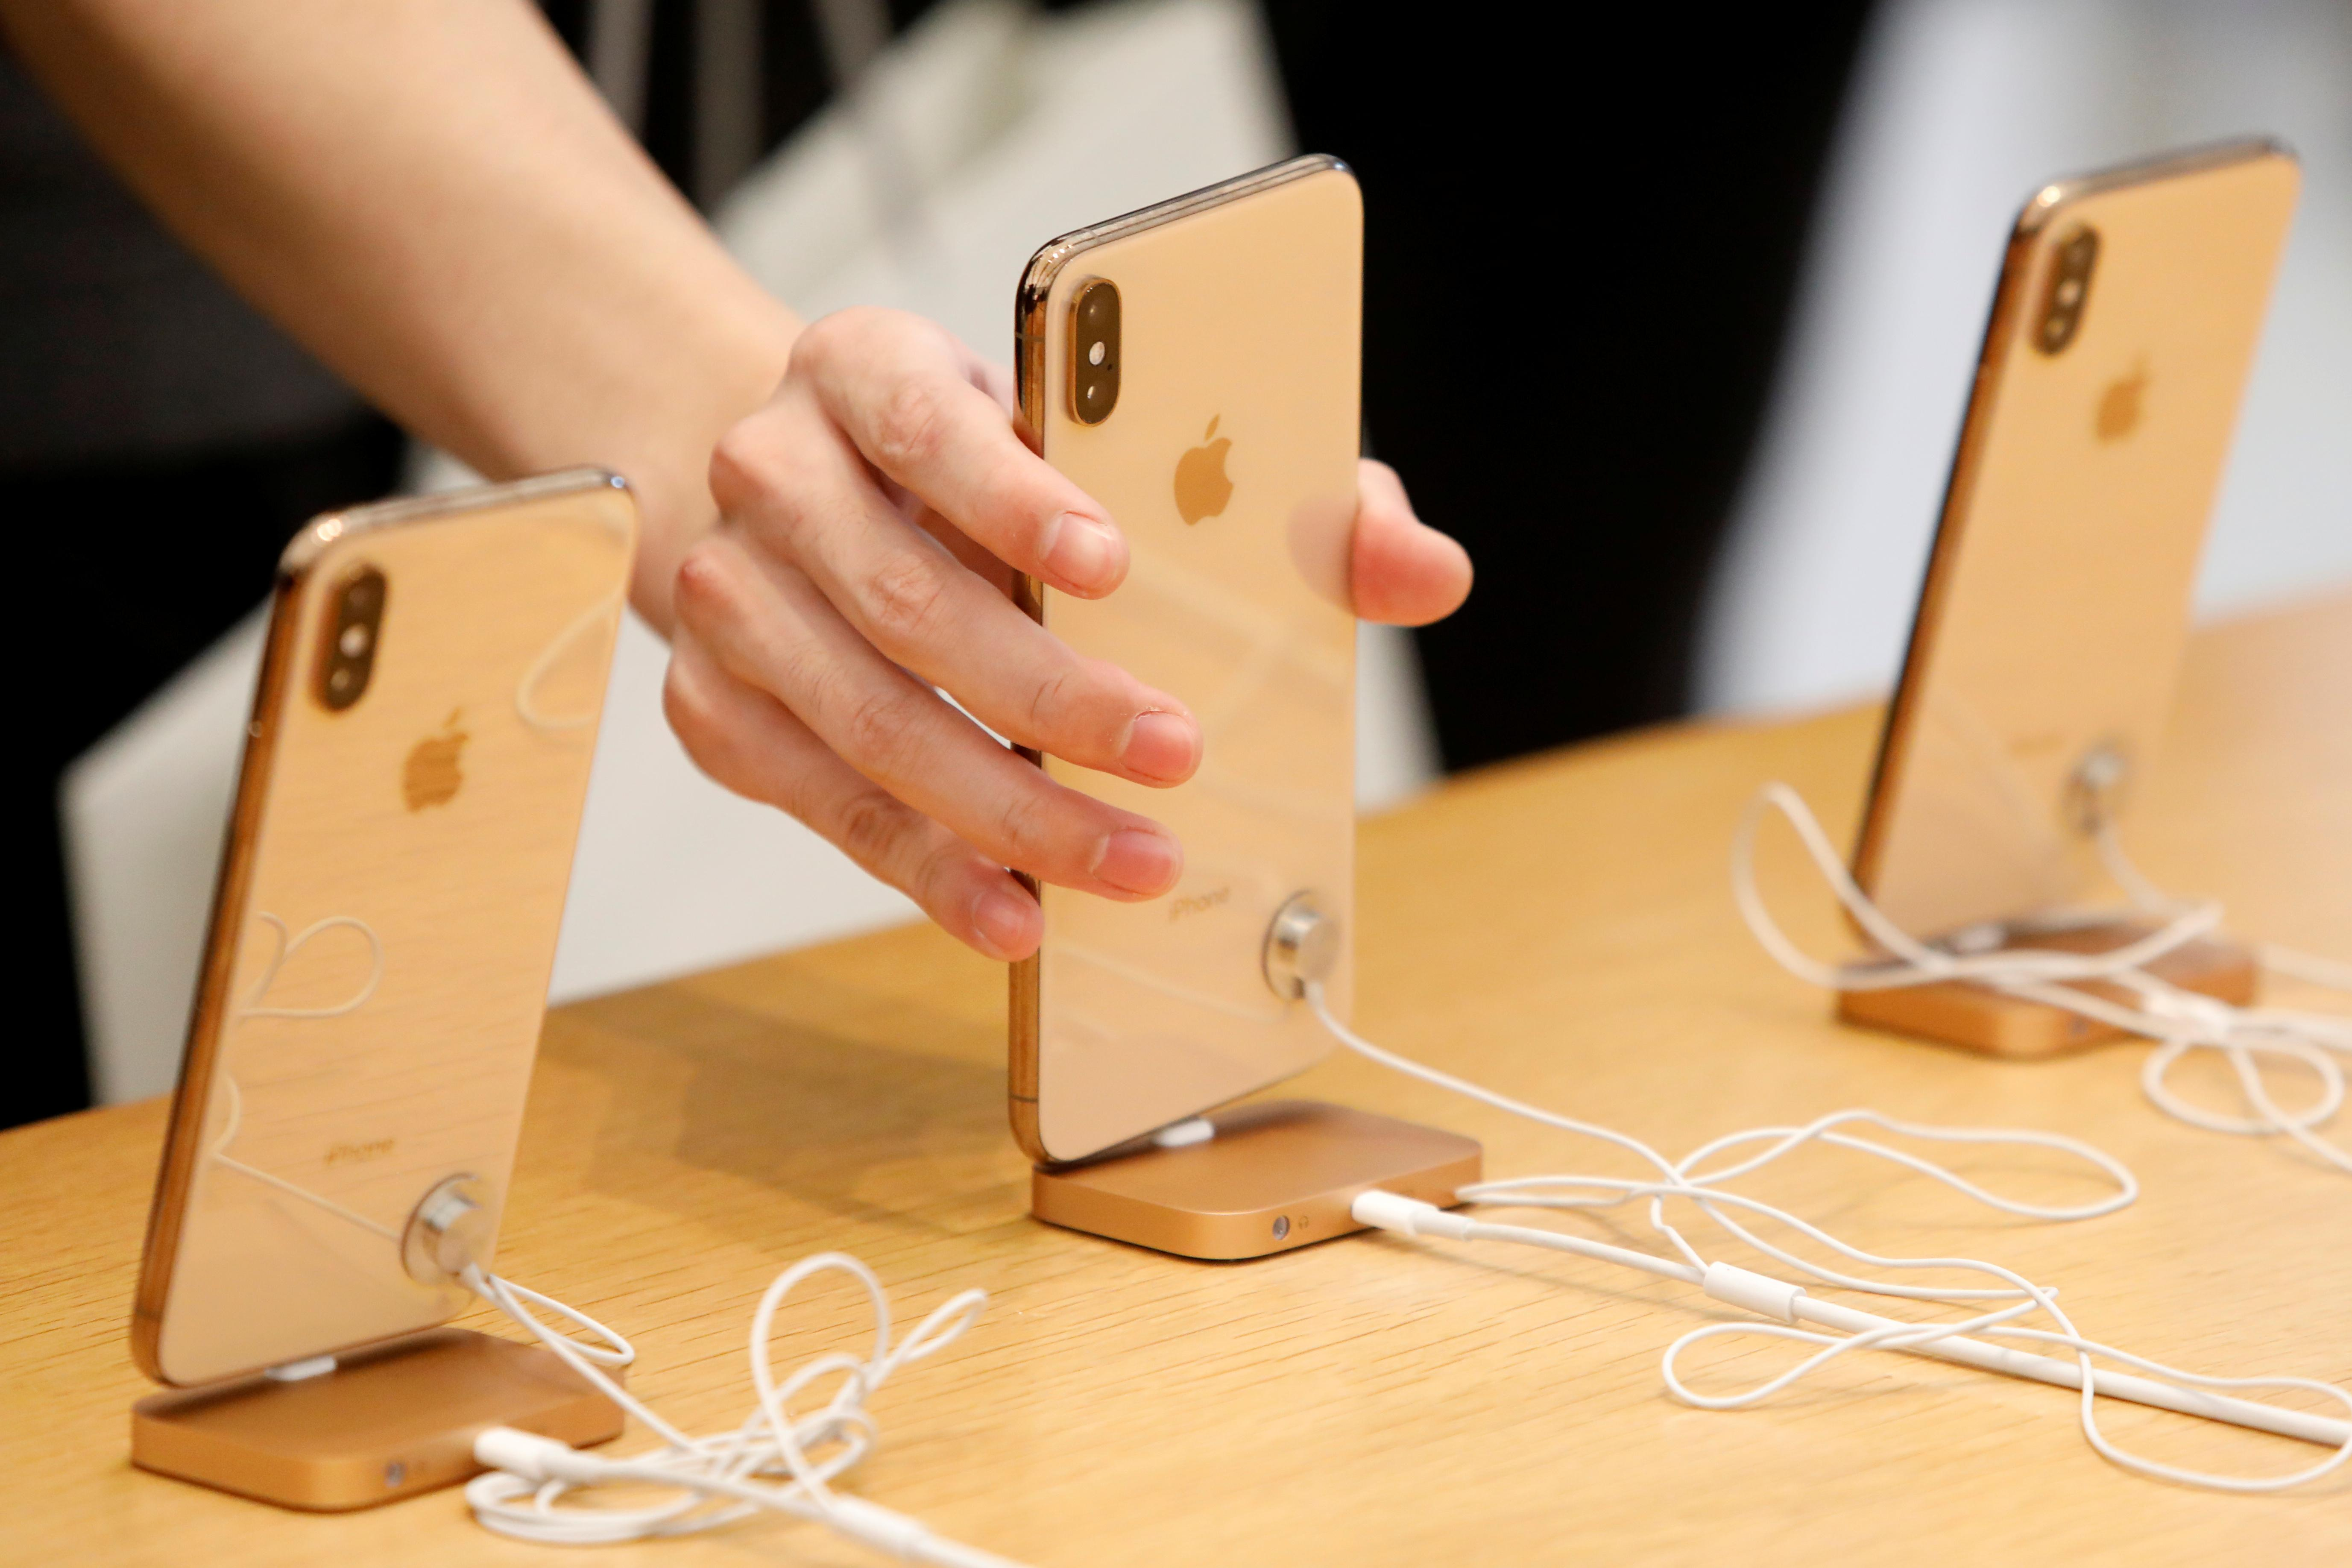 Apple says iPhones can now be fixed at all U.S. Best Buy stores